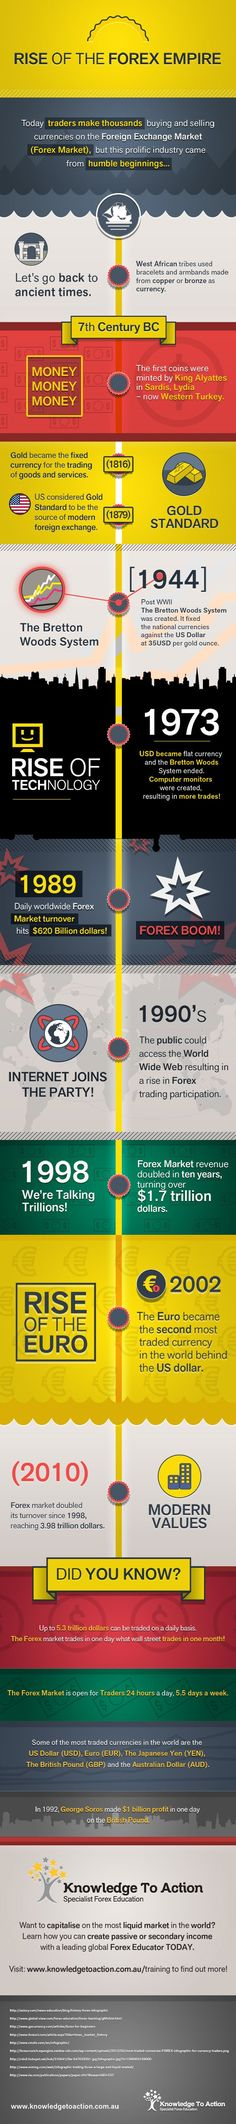 Rise of the Forex Empire   #infographic #Forex #Trading #Business